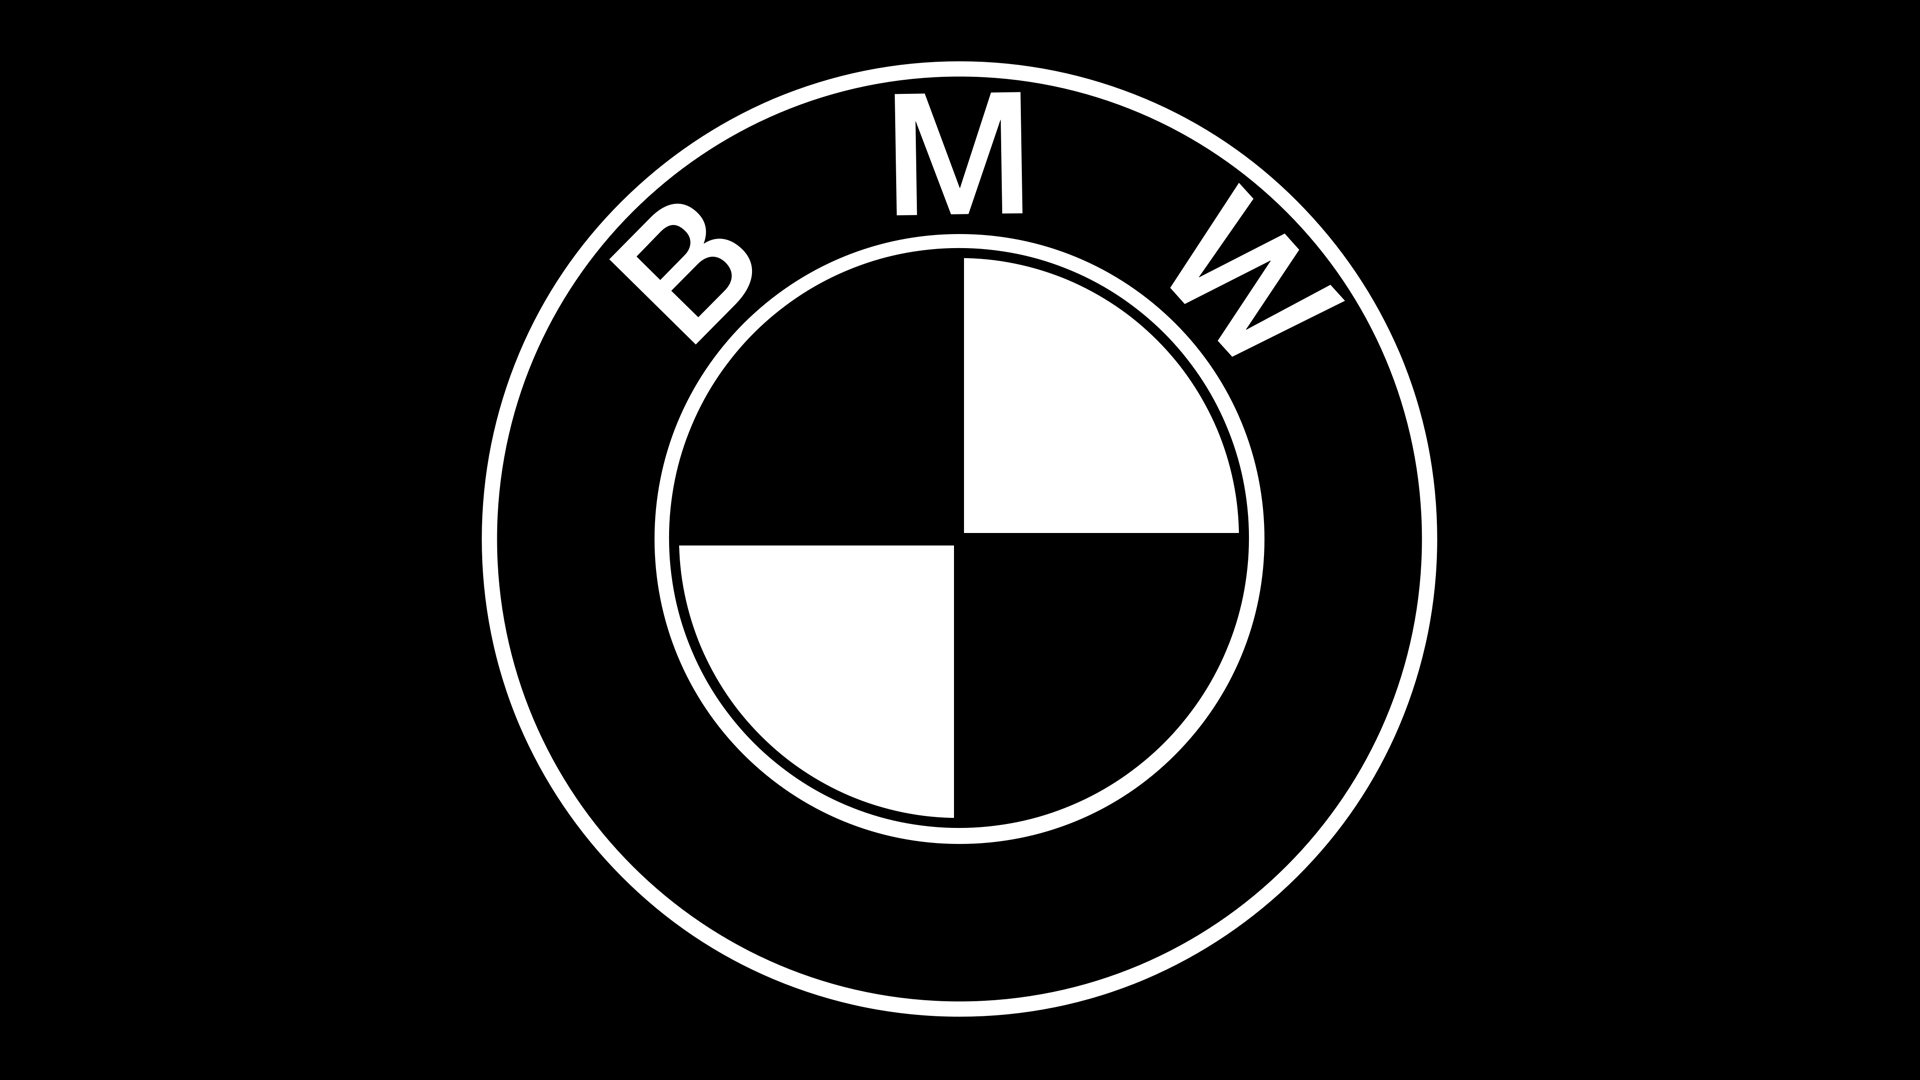 BMW Logo, BMW Symbol, Meaning, History And Evolution